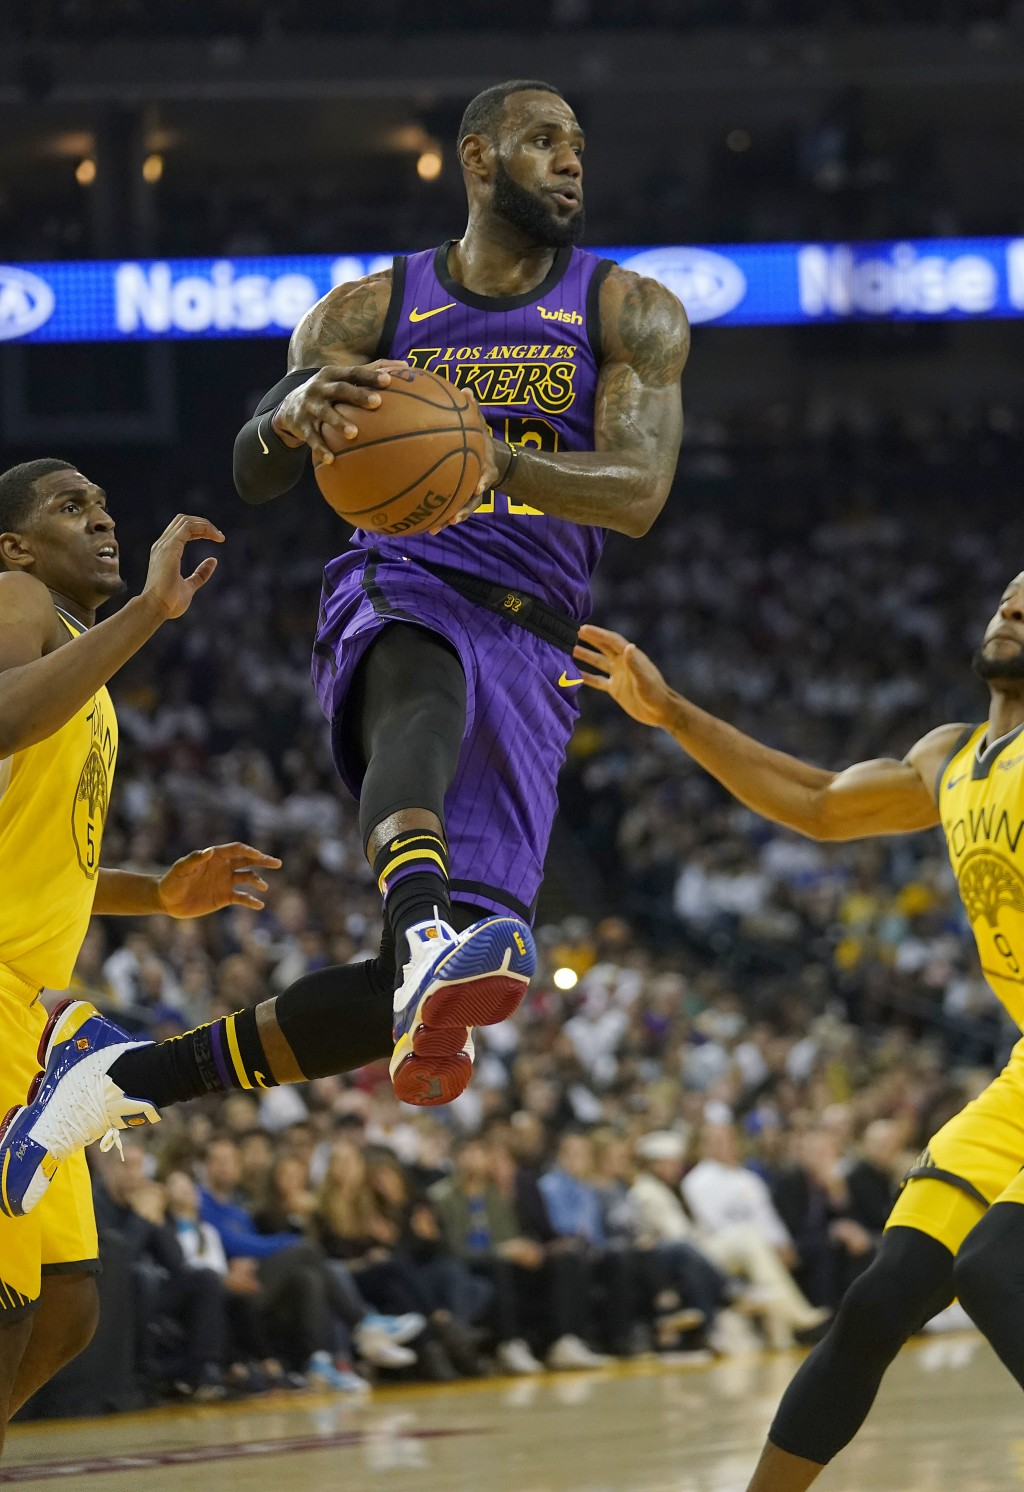 Los Angeles Lakers forward LeBron James (23) drives between Golden State Warriors' Kevon Looney (5) and Andre Iguodala during the first half of an NBA